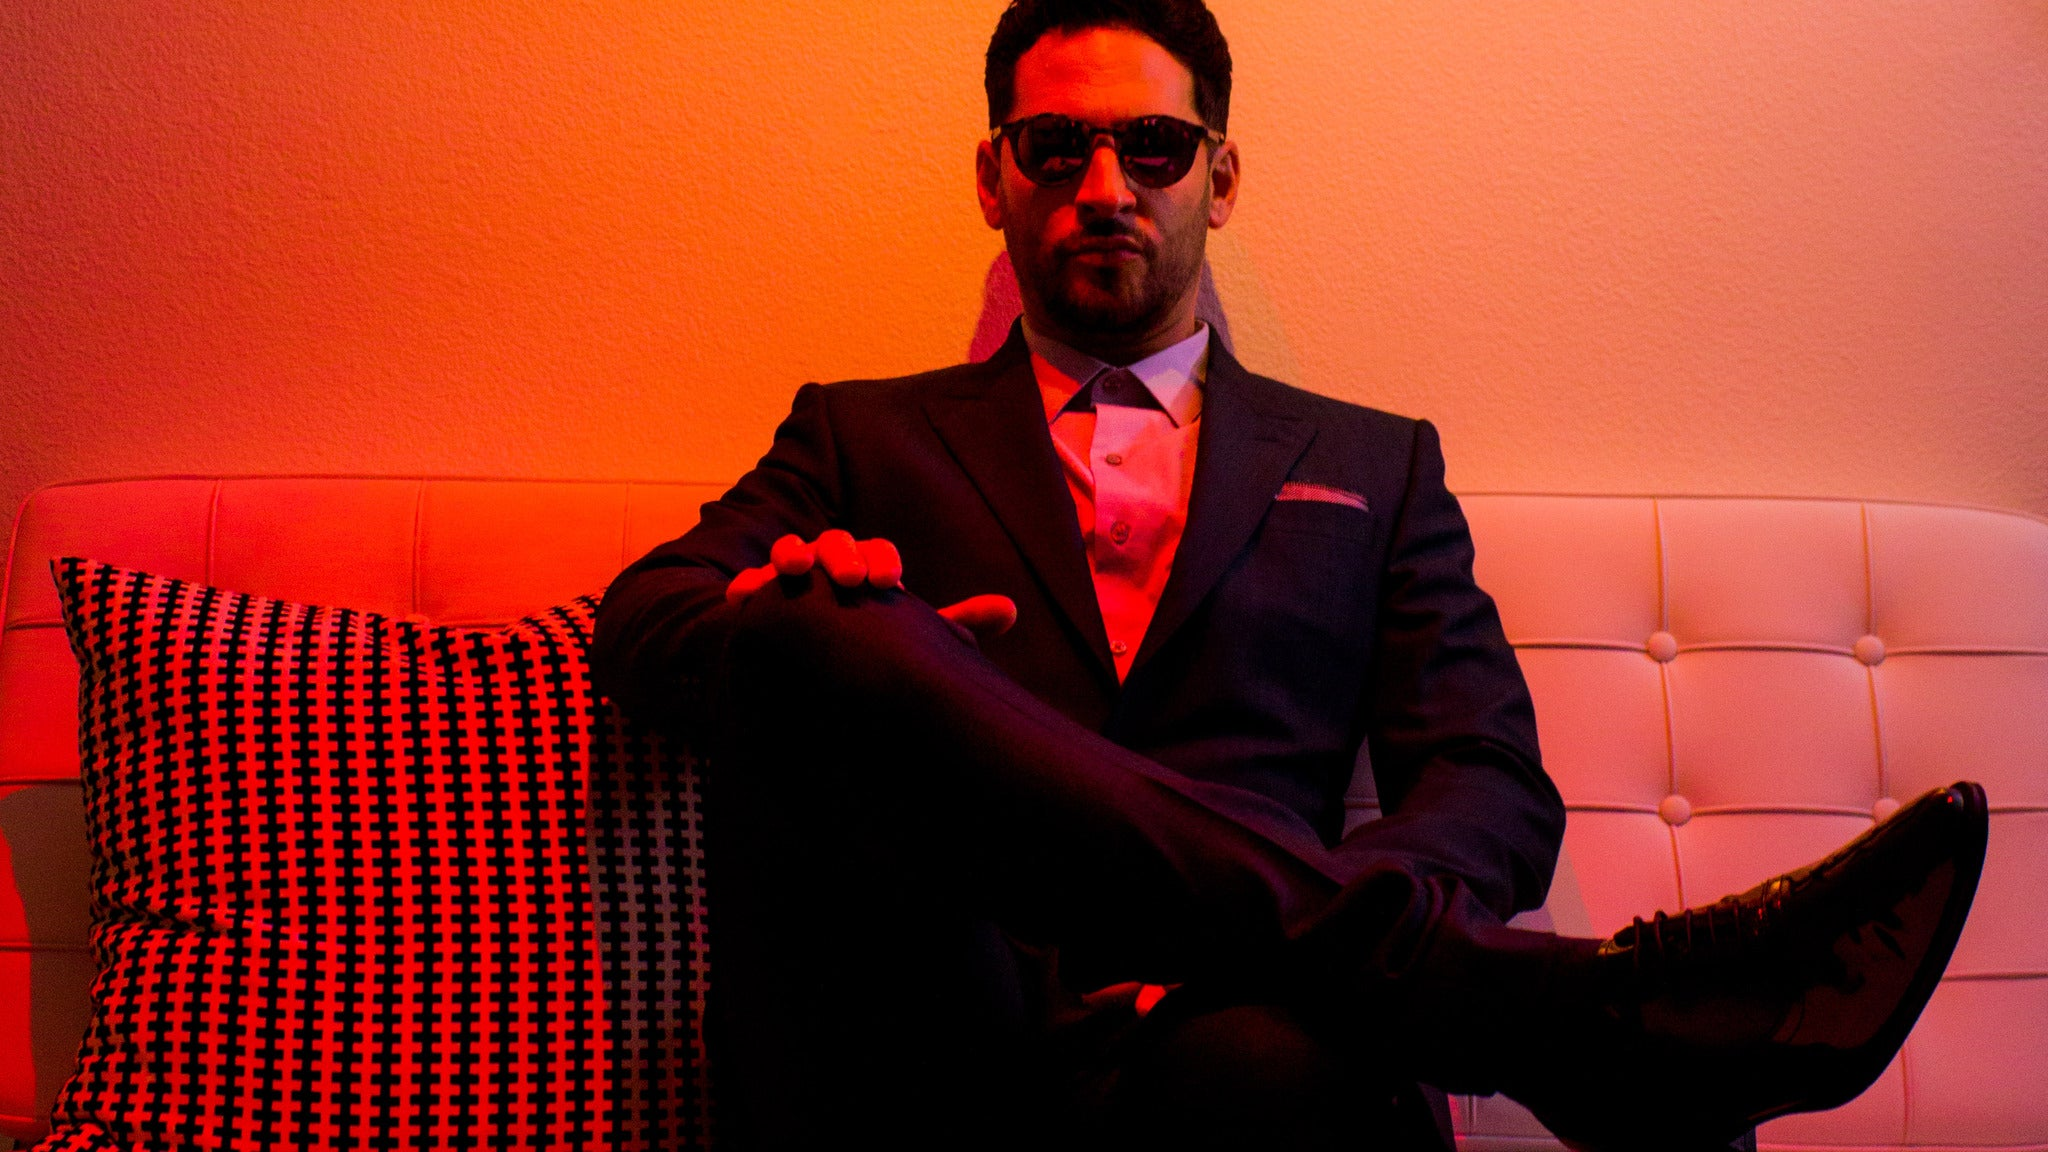 Jon B at The Vogue at Vogue Theatre - IN